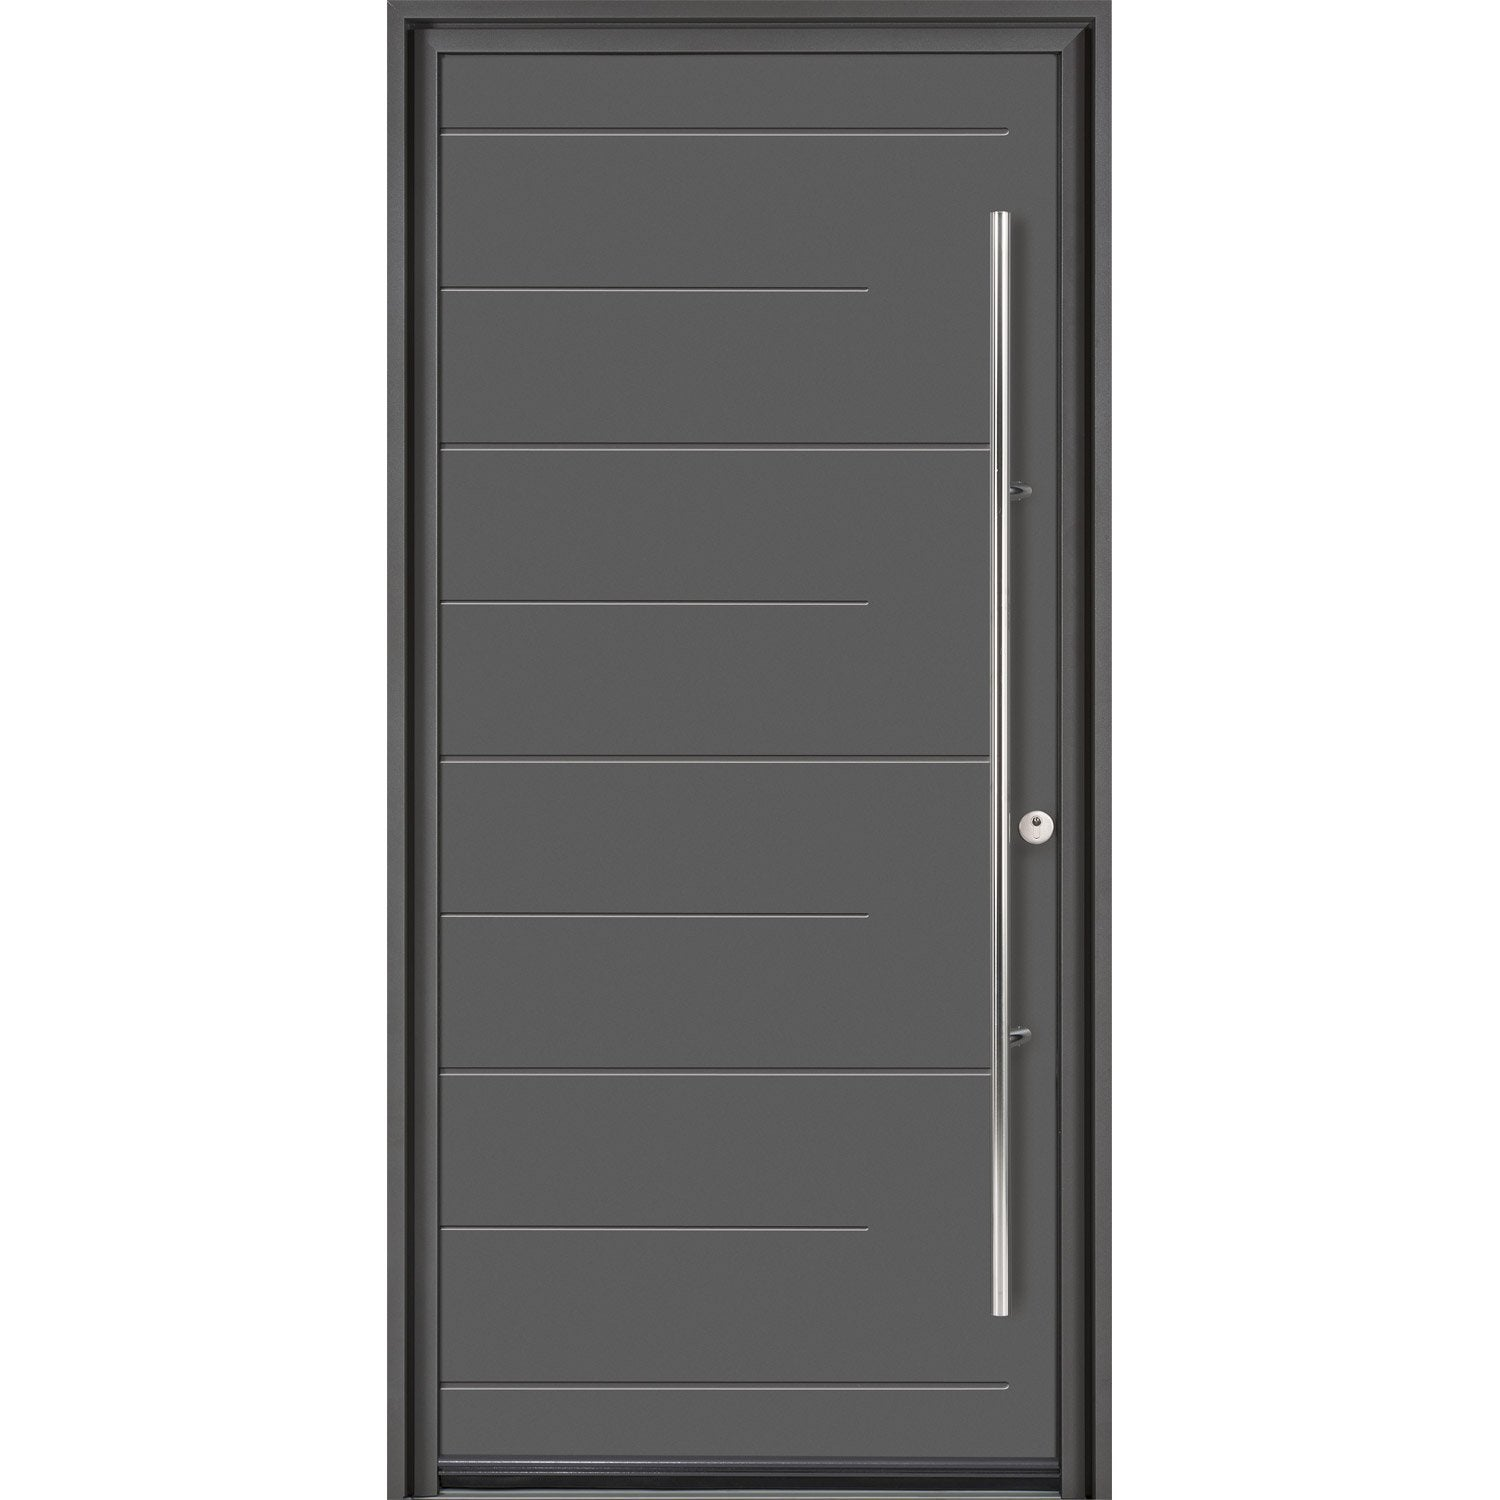 Portes d entree leroy merlin maison design for Porte extensible leroy merlin